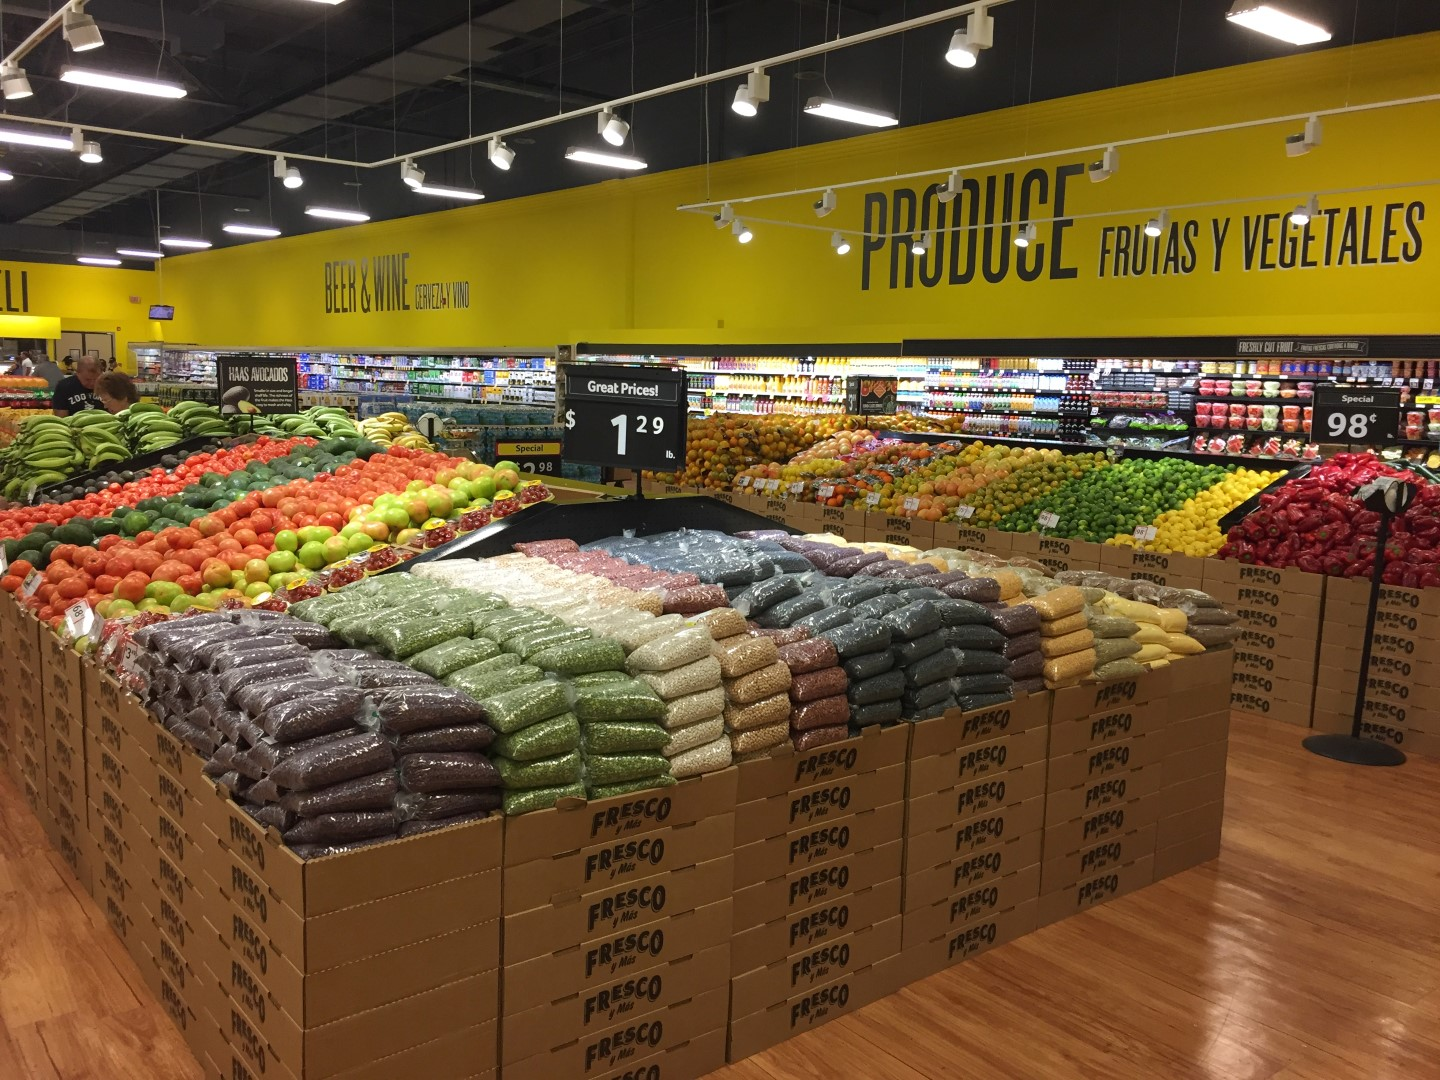 Produce selection at Fresco Y Mas